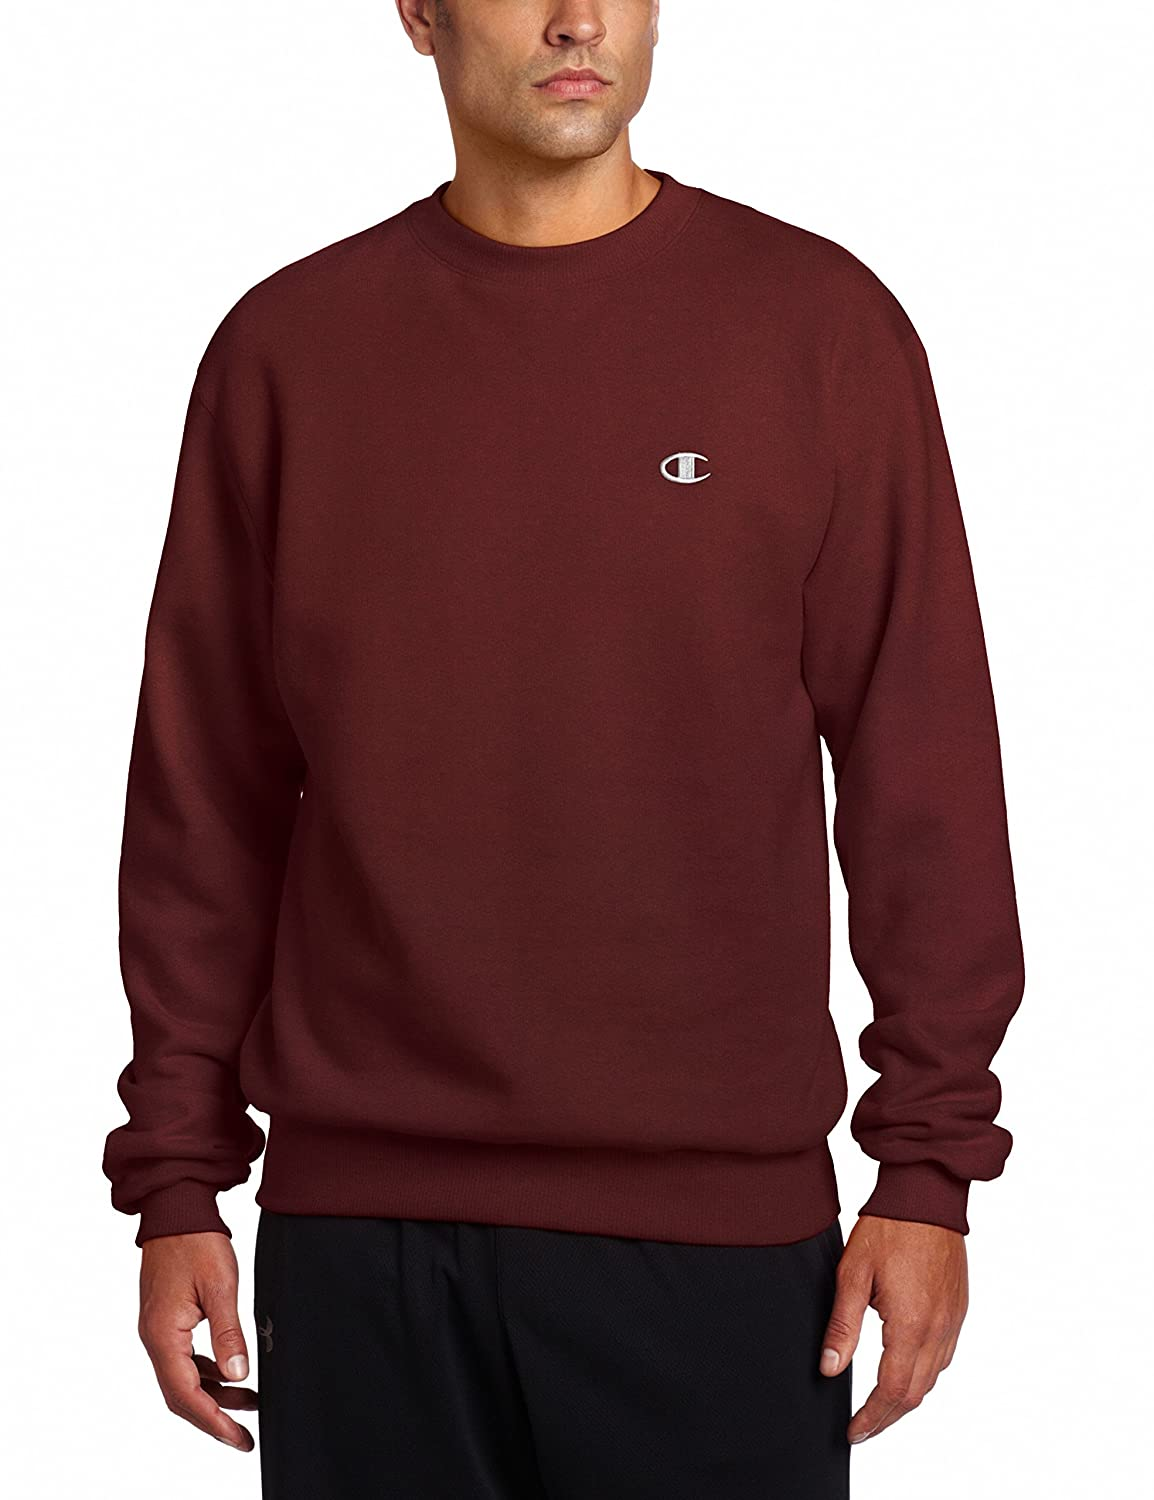 b118b32d9 Amazon.com: Champion Men's Pullover Eco Fleece Sweatshirt: Clothing